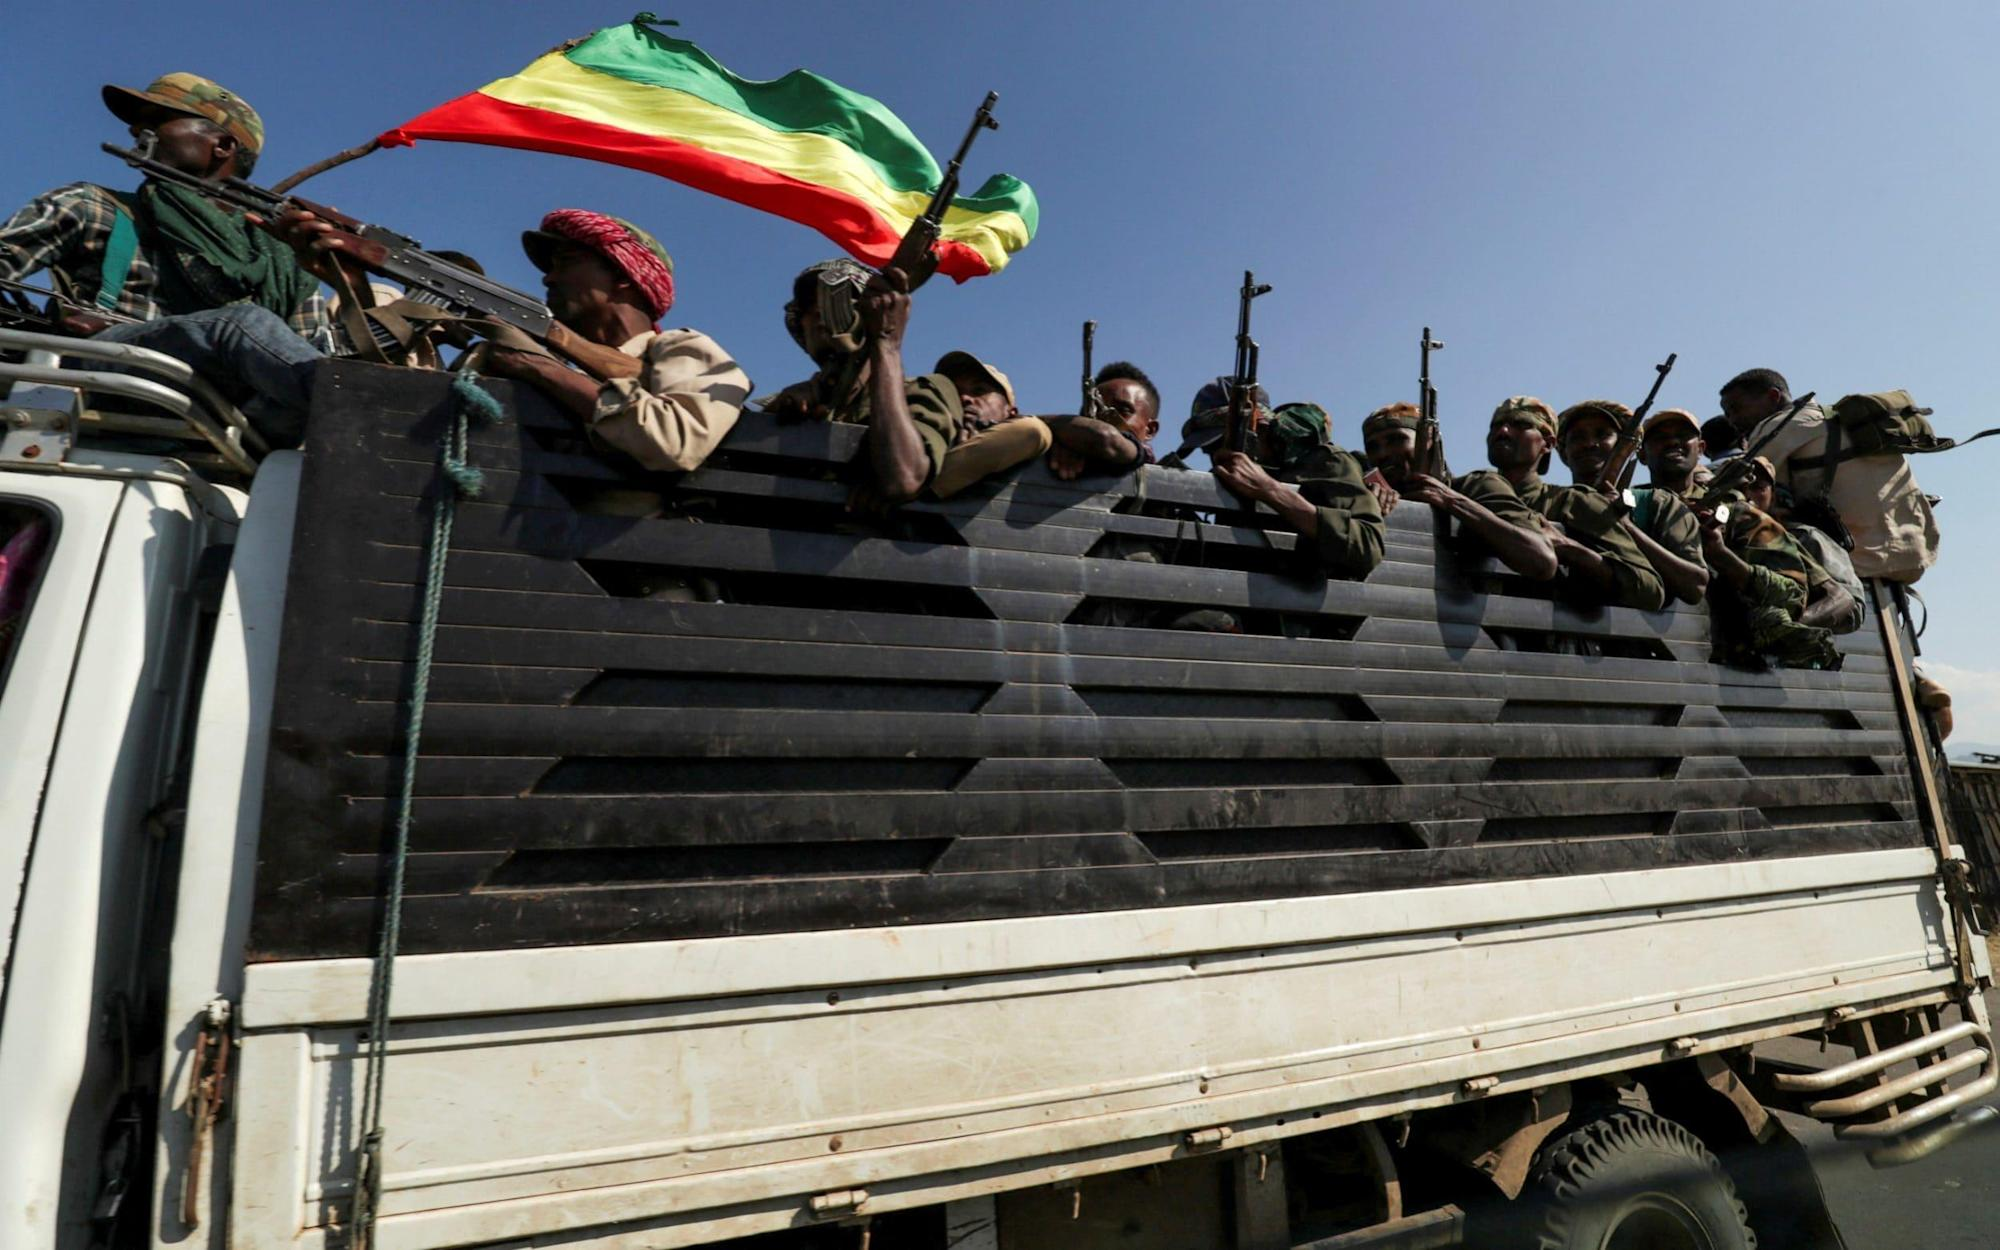 Hundreds of Ethiopians 'hacked to death' as civil conflict spirals out of control